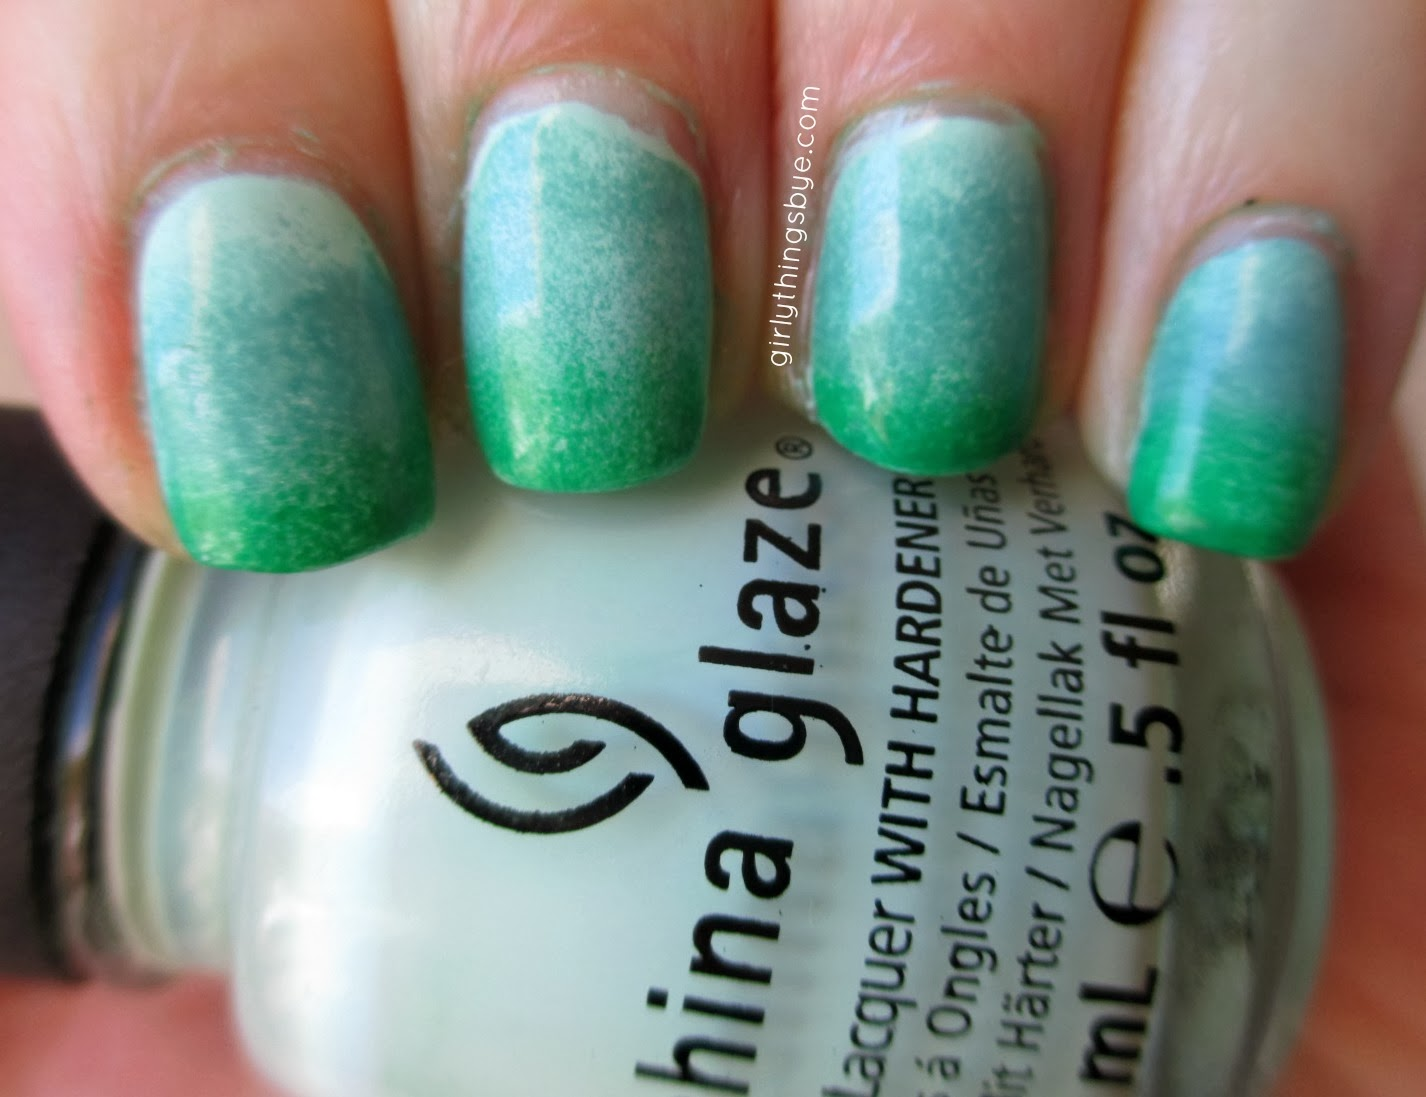 China Glaze Refreshmint, Julep Daphne, Revlon Posh nail polish, Ombre nails, @girlythingsby_e